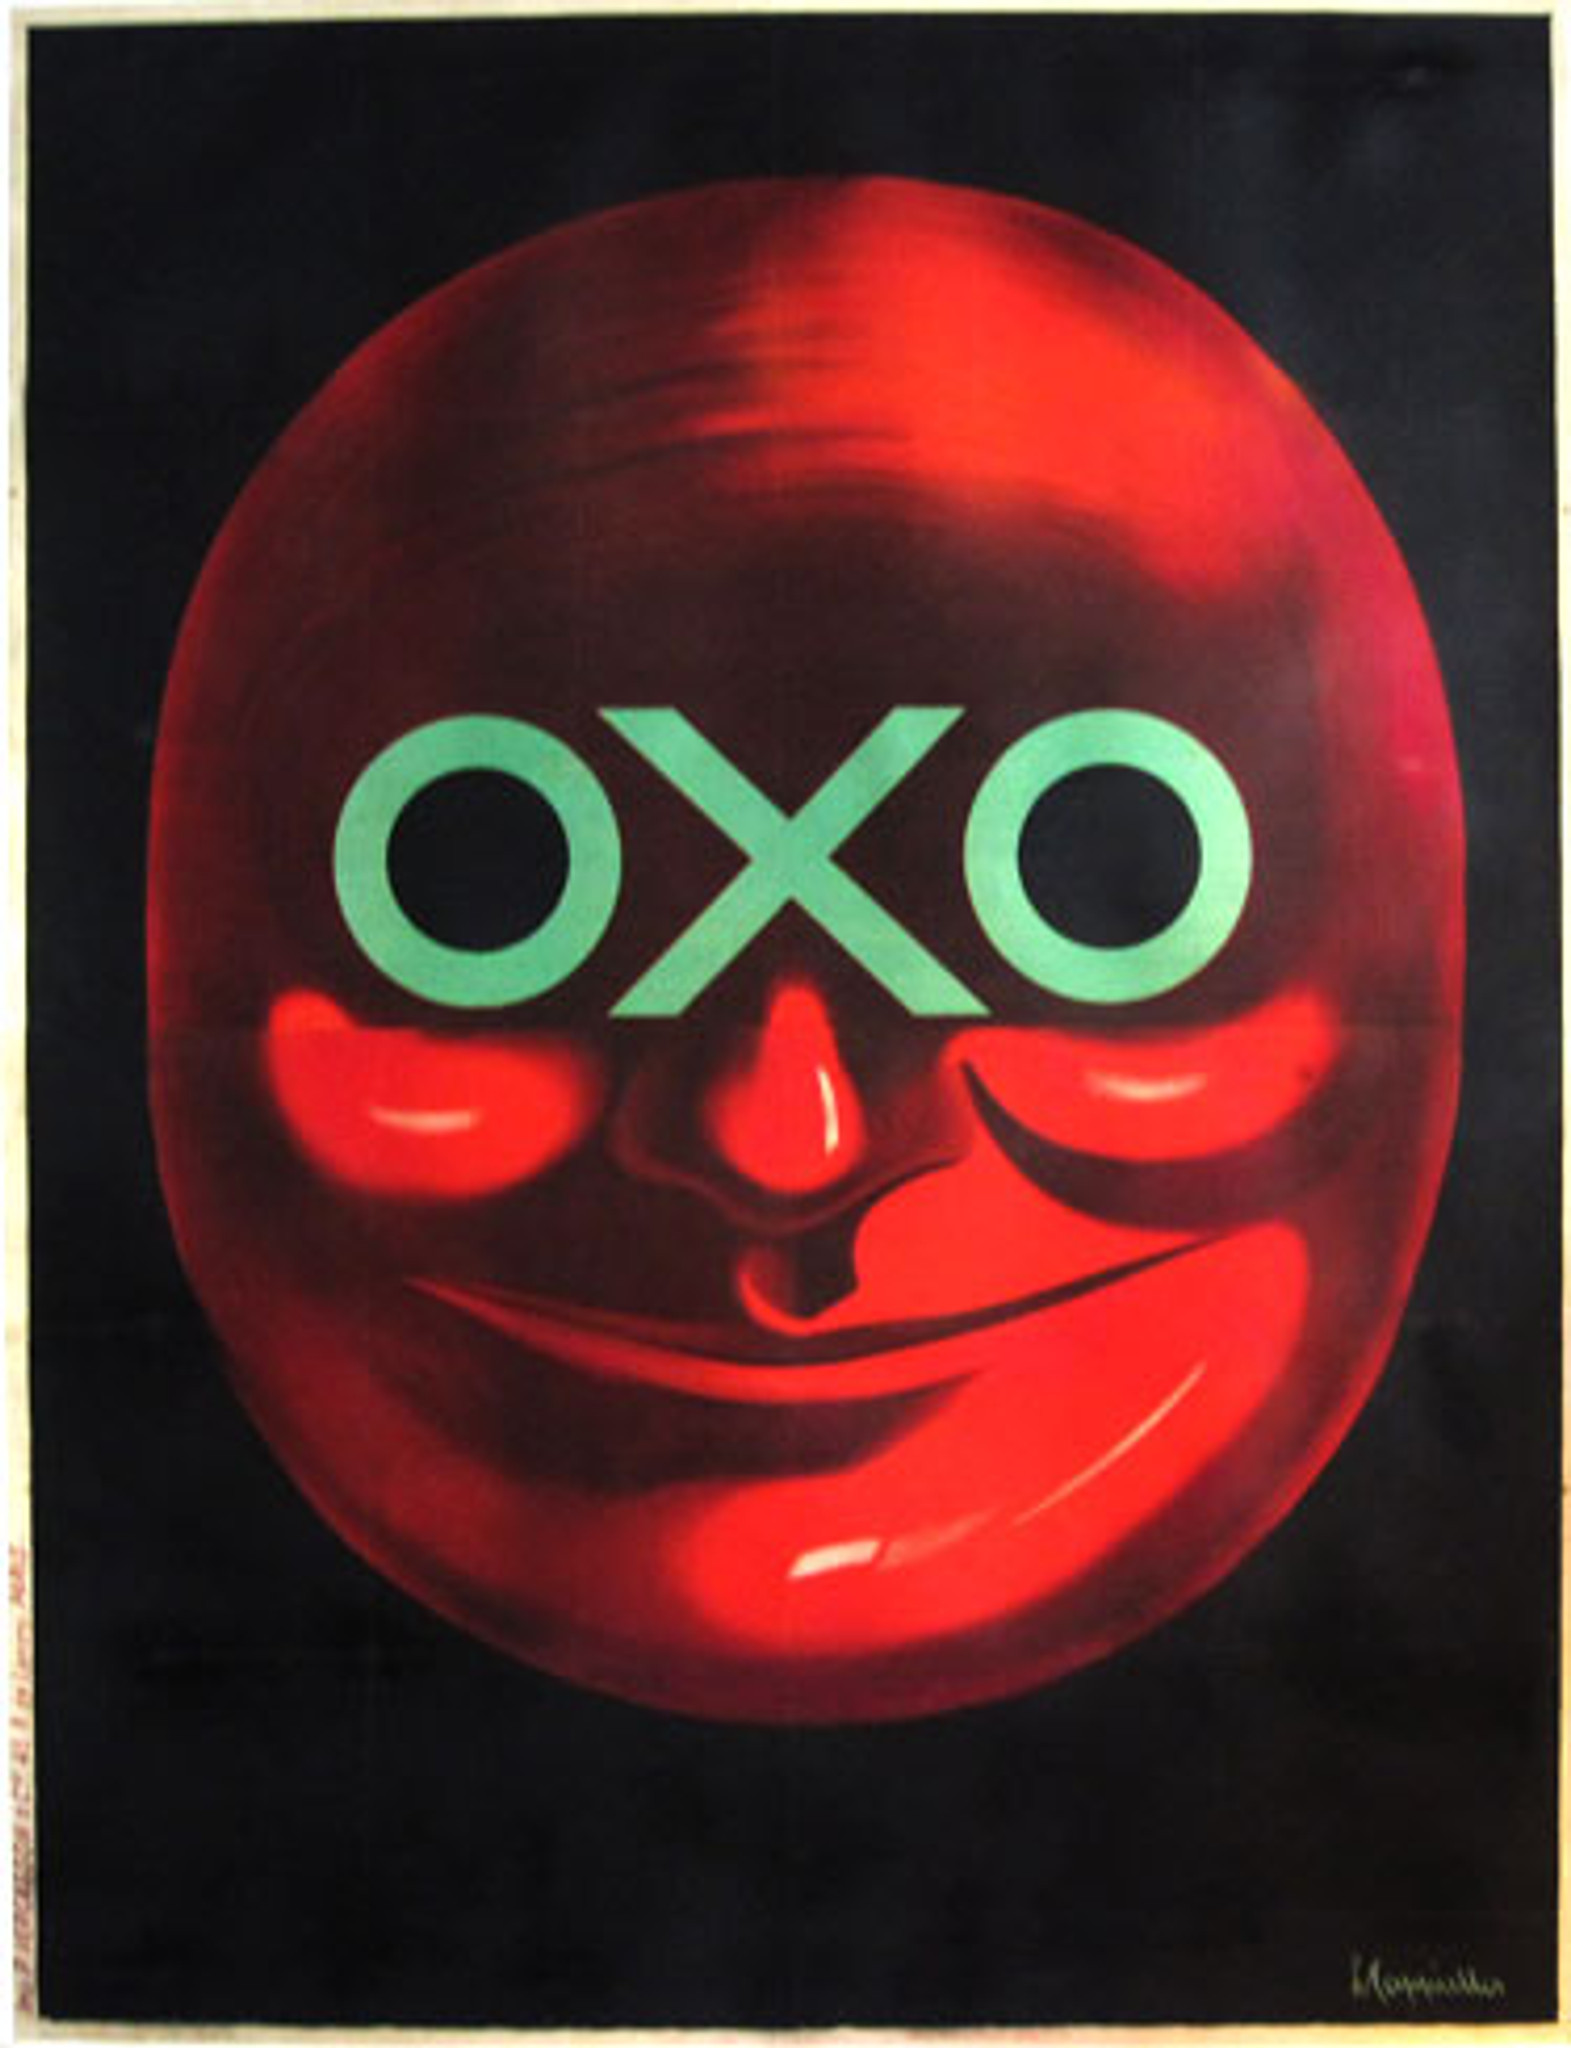 Oxo Vintage Leonetto Cappiello Advertising Poster Canvas Giclee Print 24x30 in.